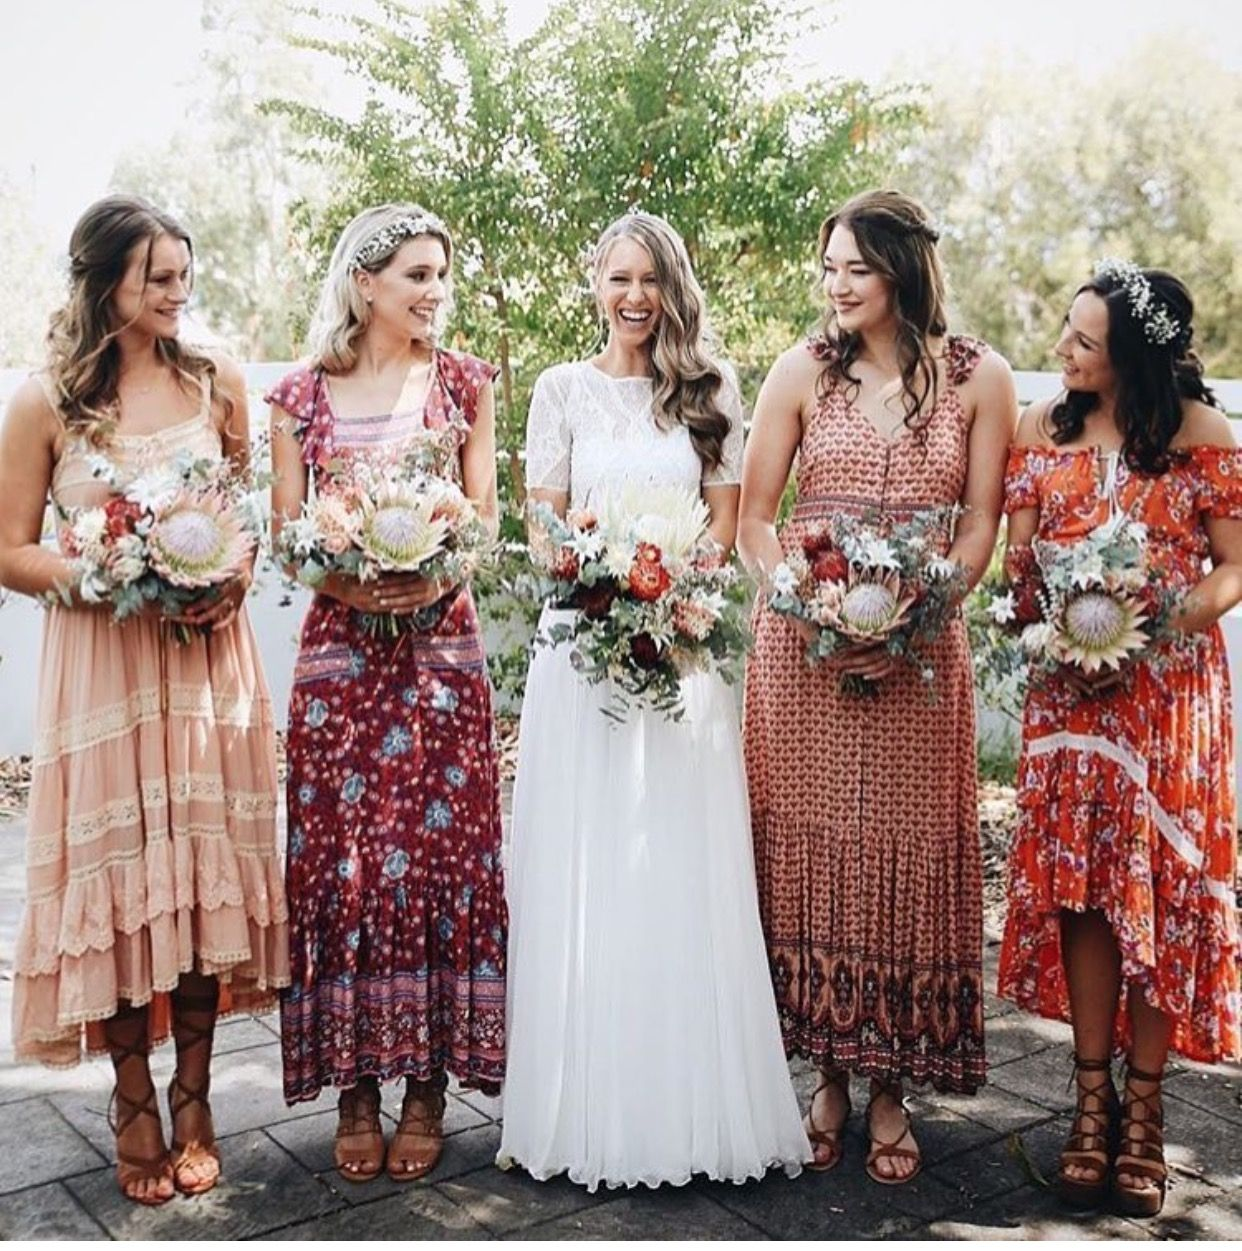 Beachy Boho Bridesmaid Dresses Bridesmaid Dresses Boho Wedding Dress Inspiration Bohemian Wedding Dresses